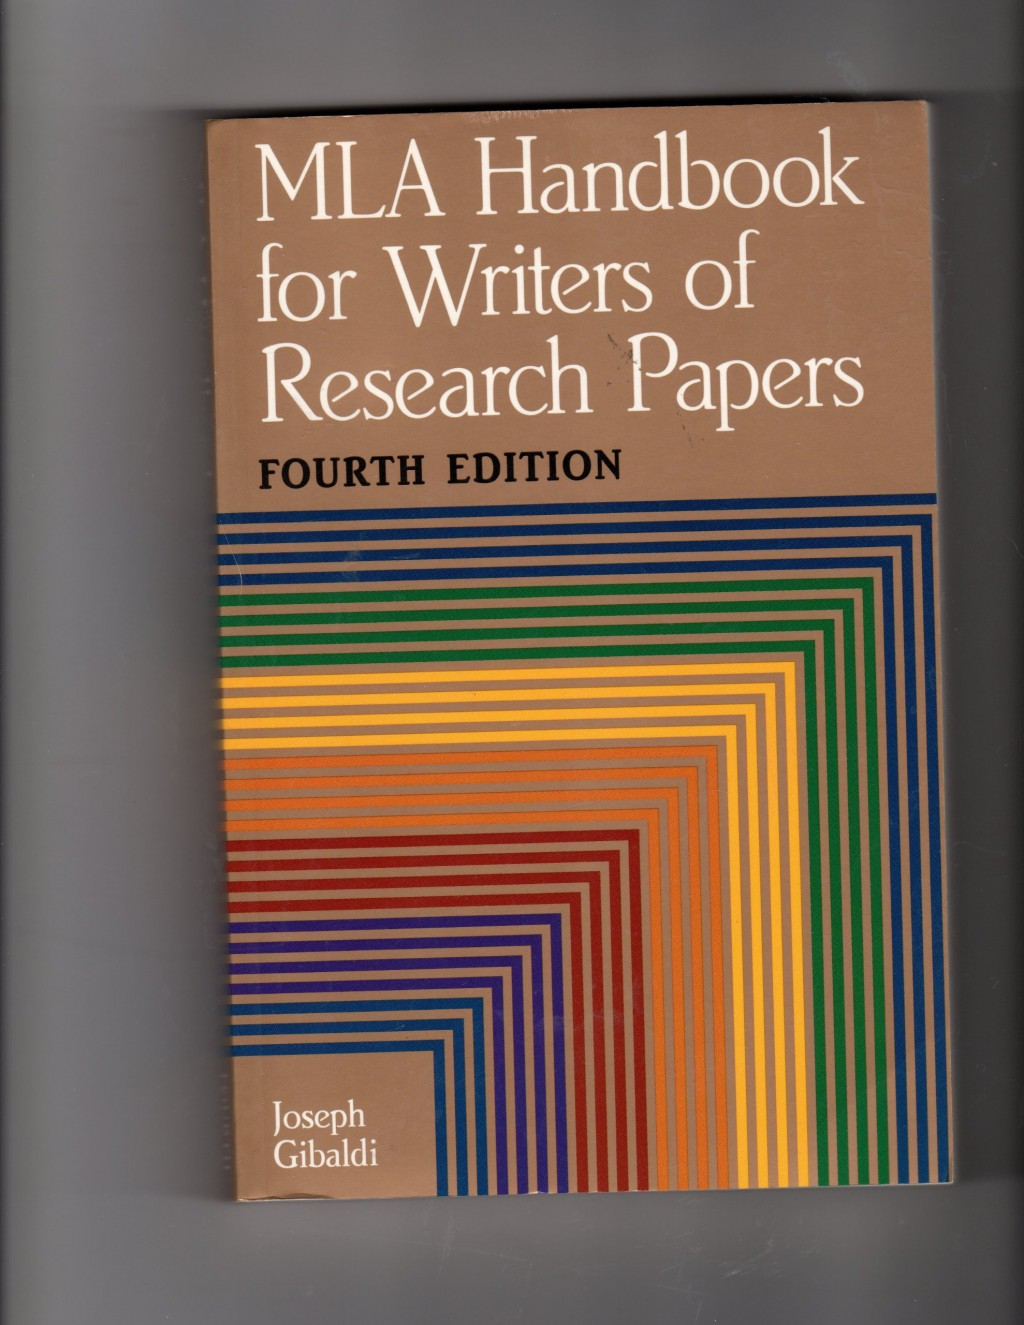 003 91or7esc2gl Research Paper The Mla Handbook For Writers Of Fearsome Papers 8th Edition 7th 2009 (8th Ed.) Large